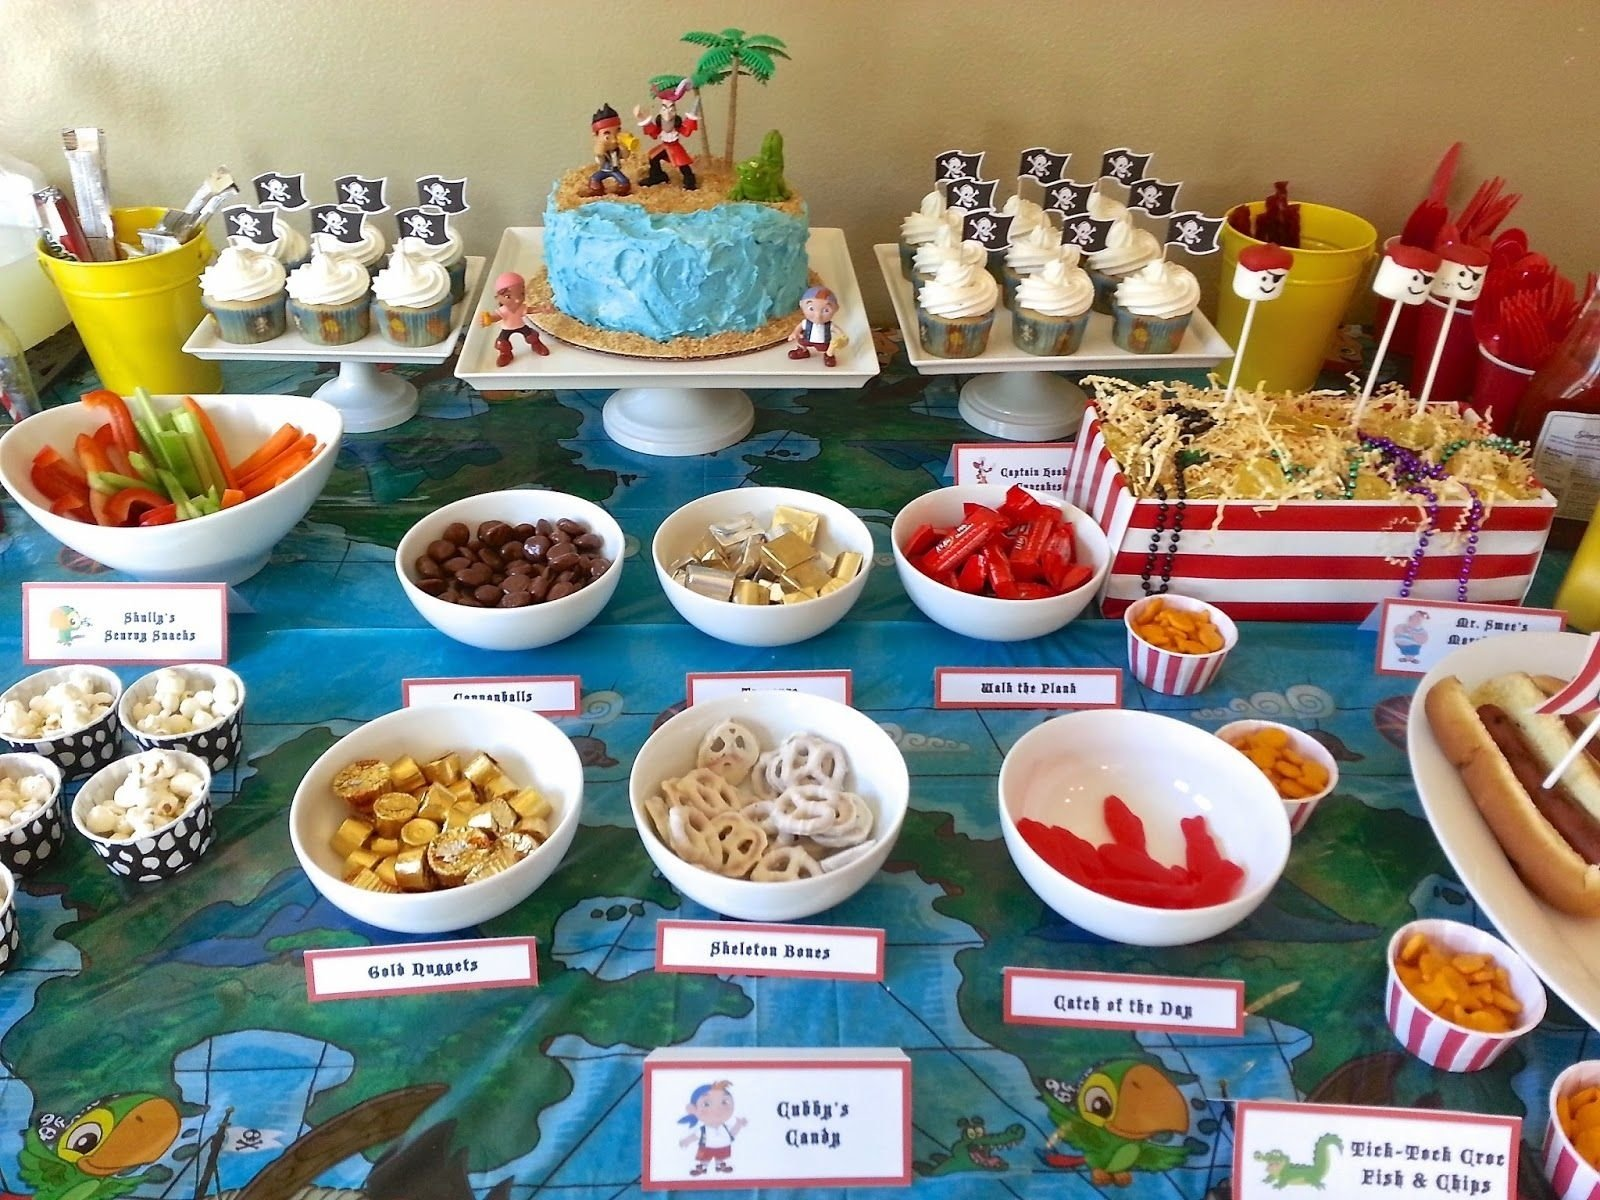 10 Pretty Jake And The Neverland Pirates Birthday Party Ideas much kneaded jake and the neverland pirates birthday party party 1 2020